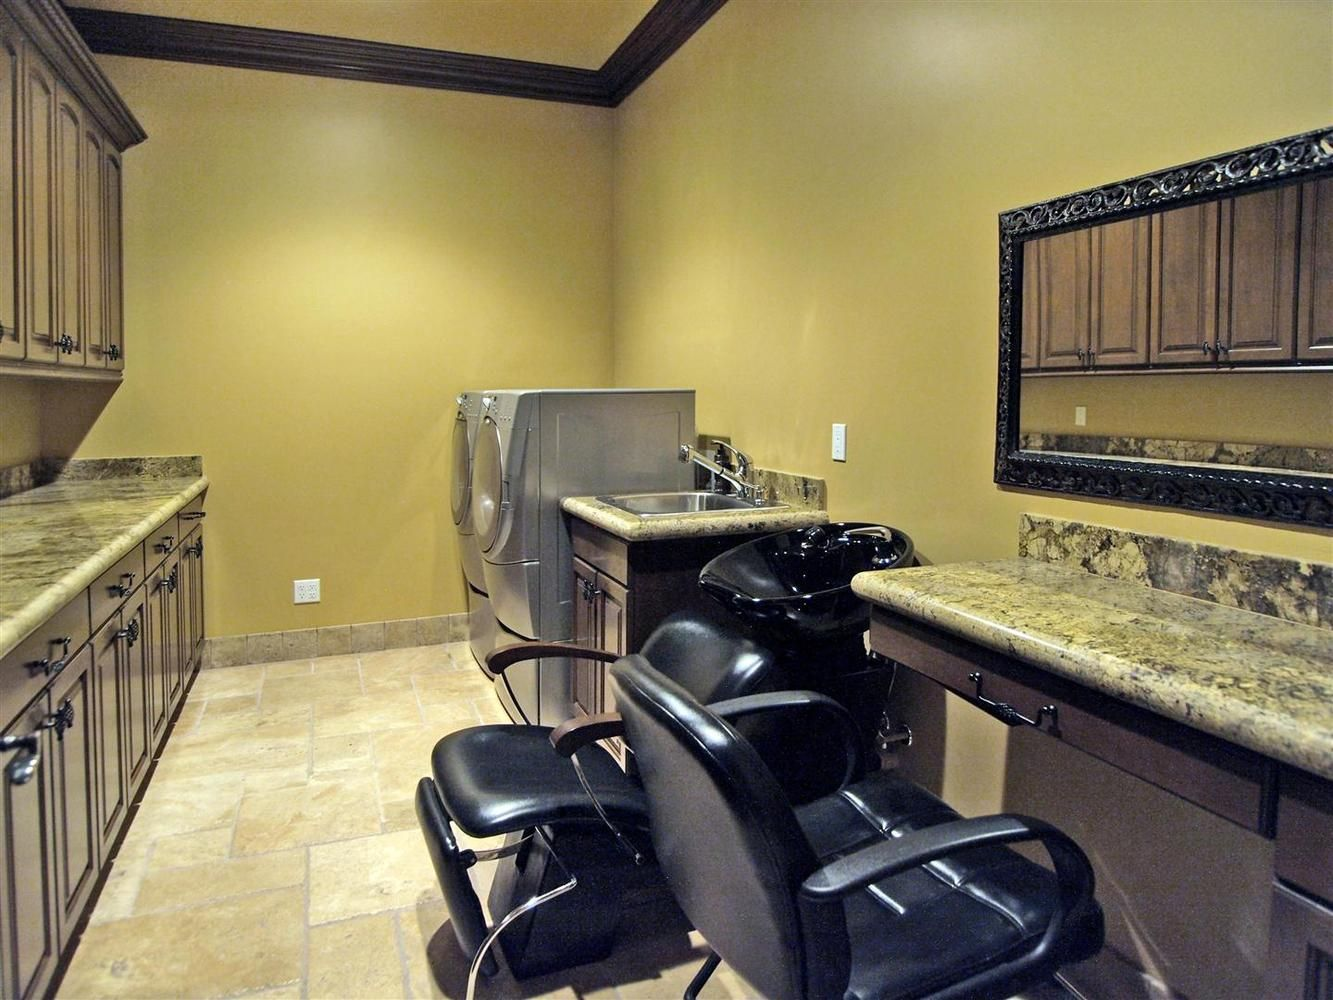 In Home Salon Laundry Room That Would Be Awesome I Love The